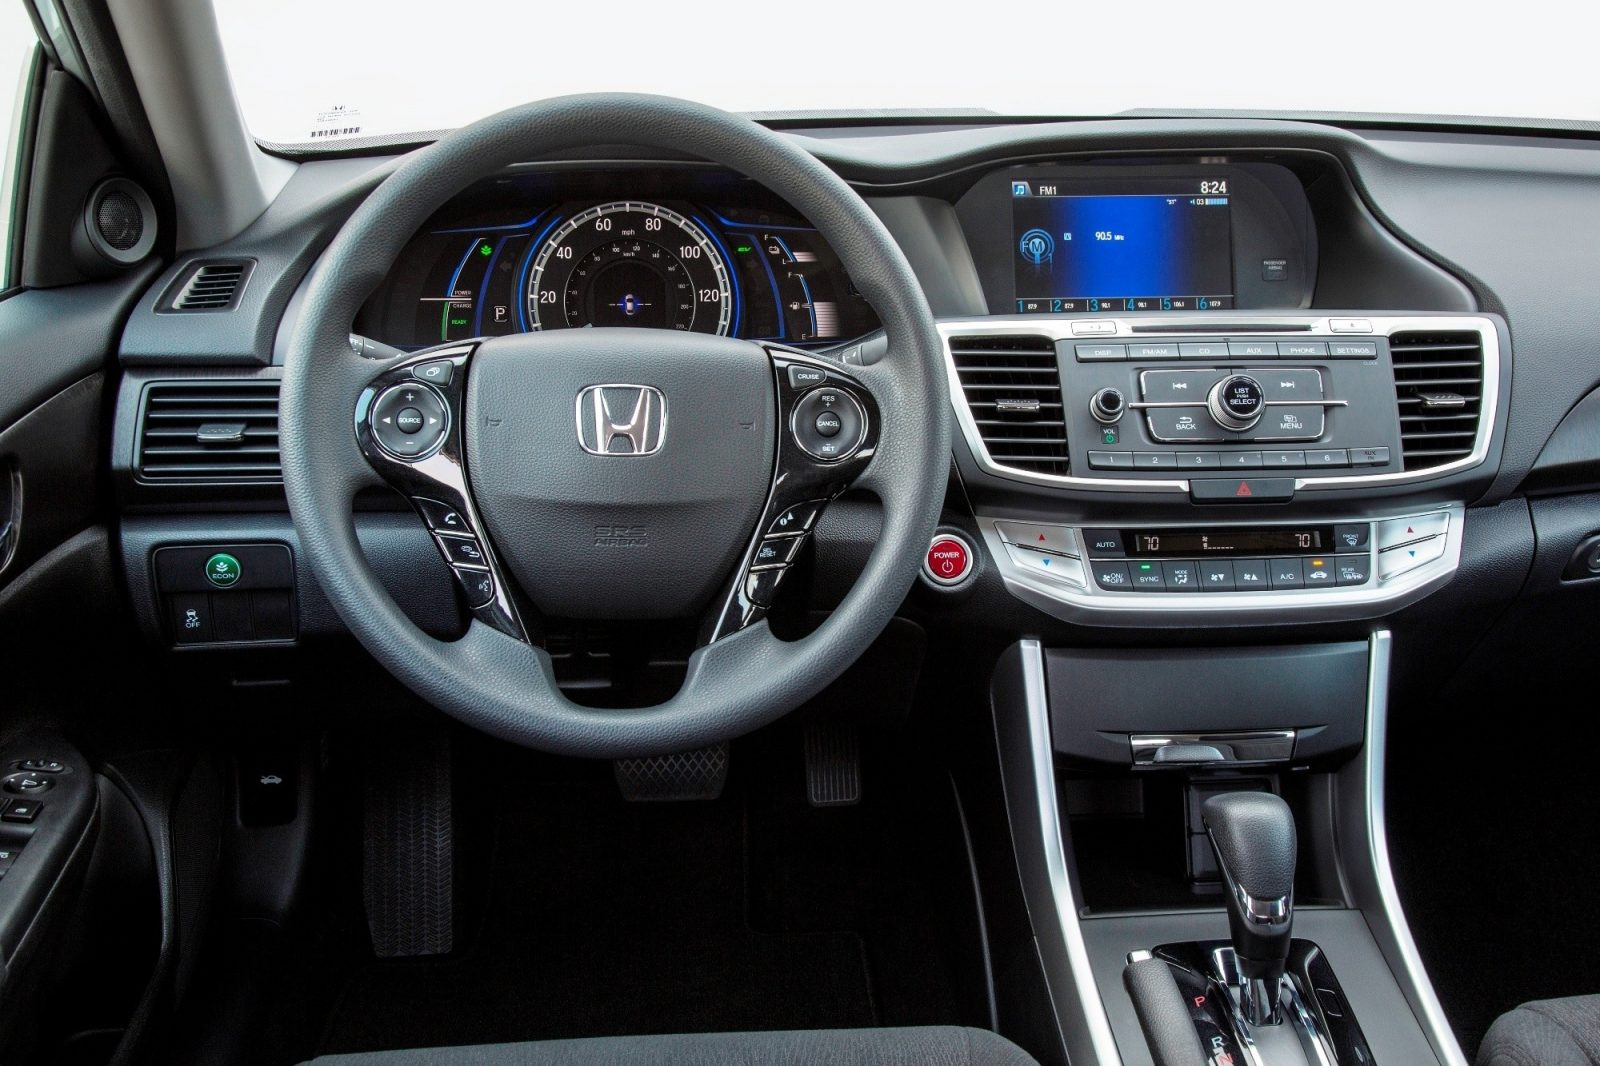 2014 Honda Accord EX-L Hybrid